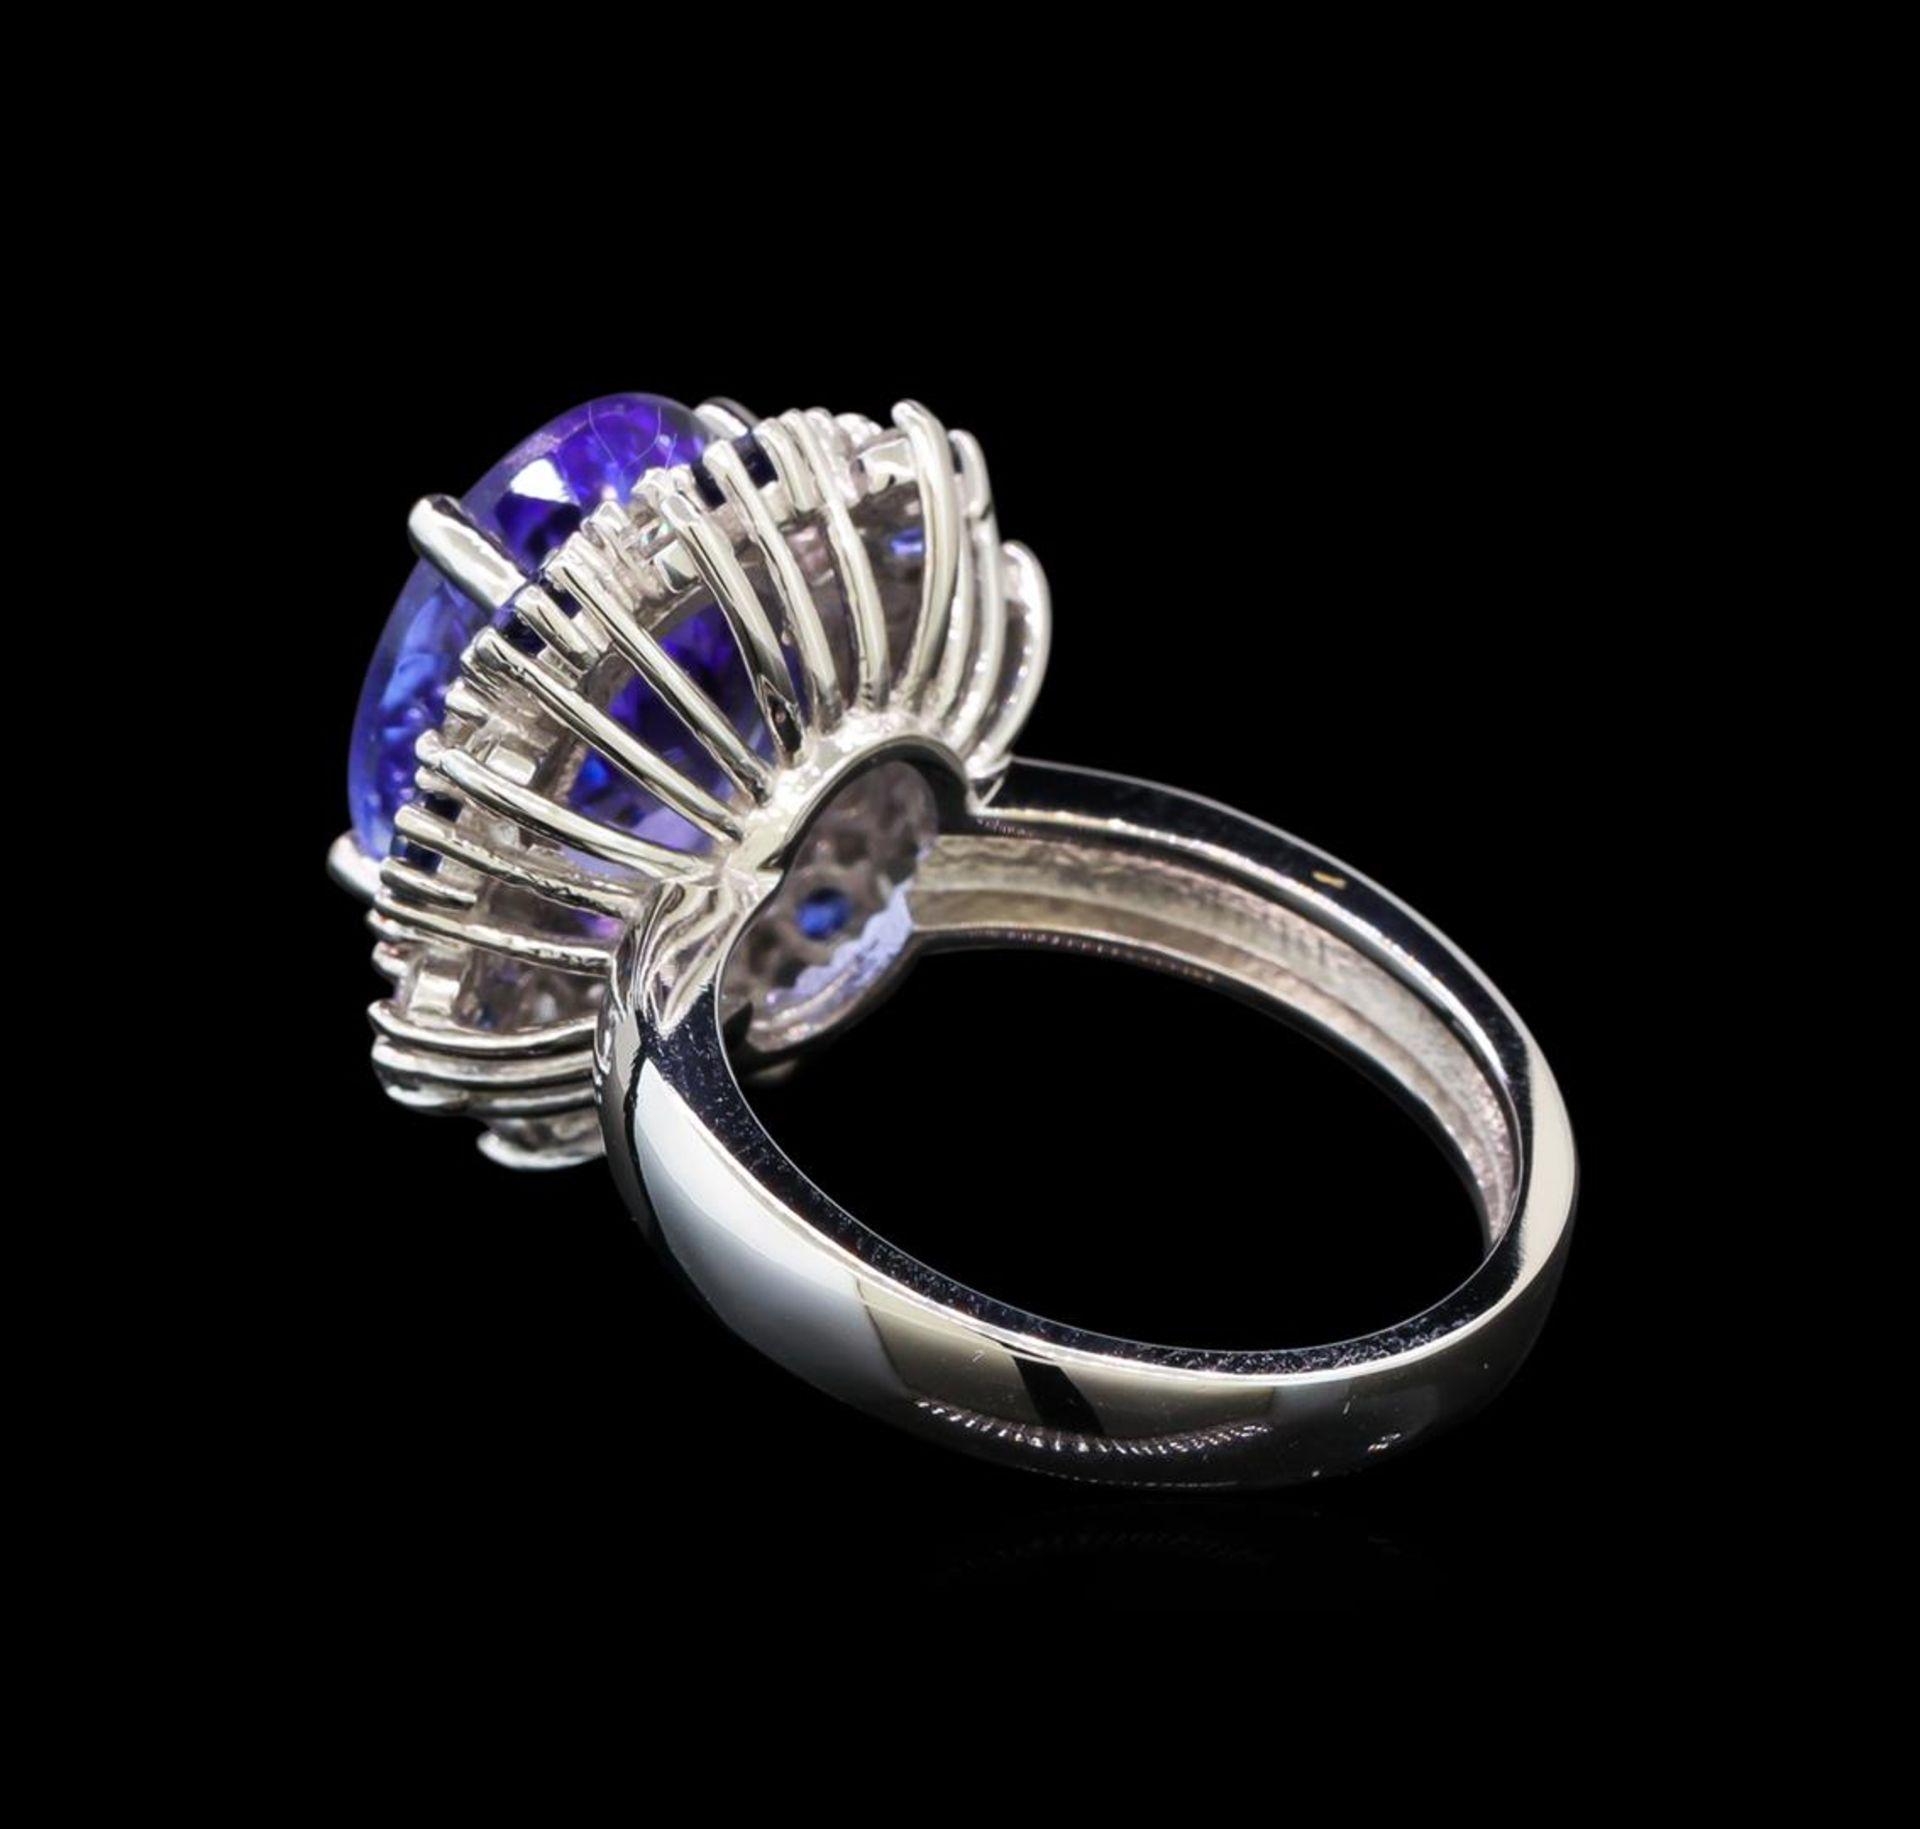 14KT White Gold 6.56 ctw Tanzanite, Sapphire and Diamond Ring - Image 3 of 5